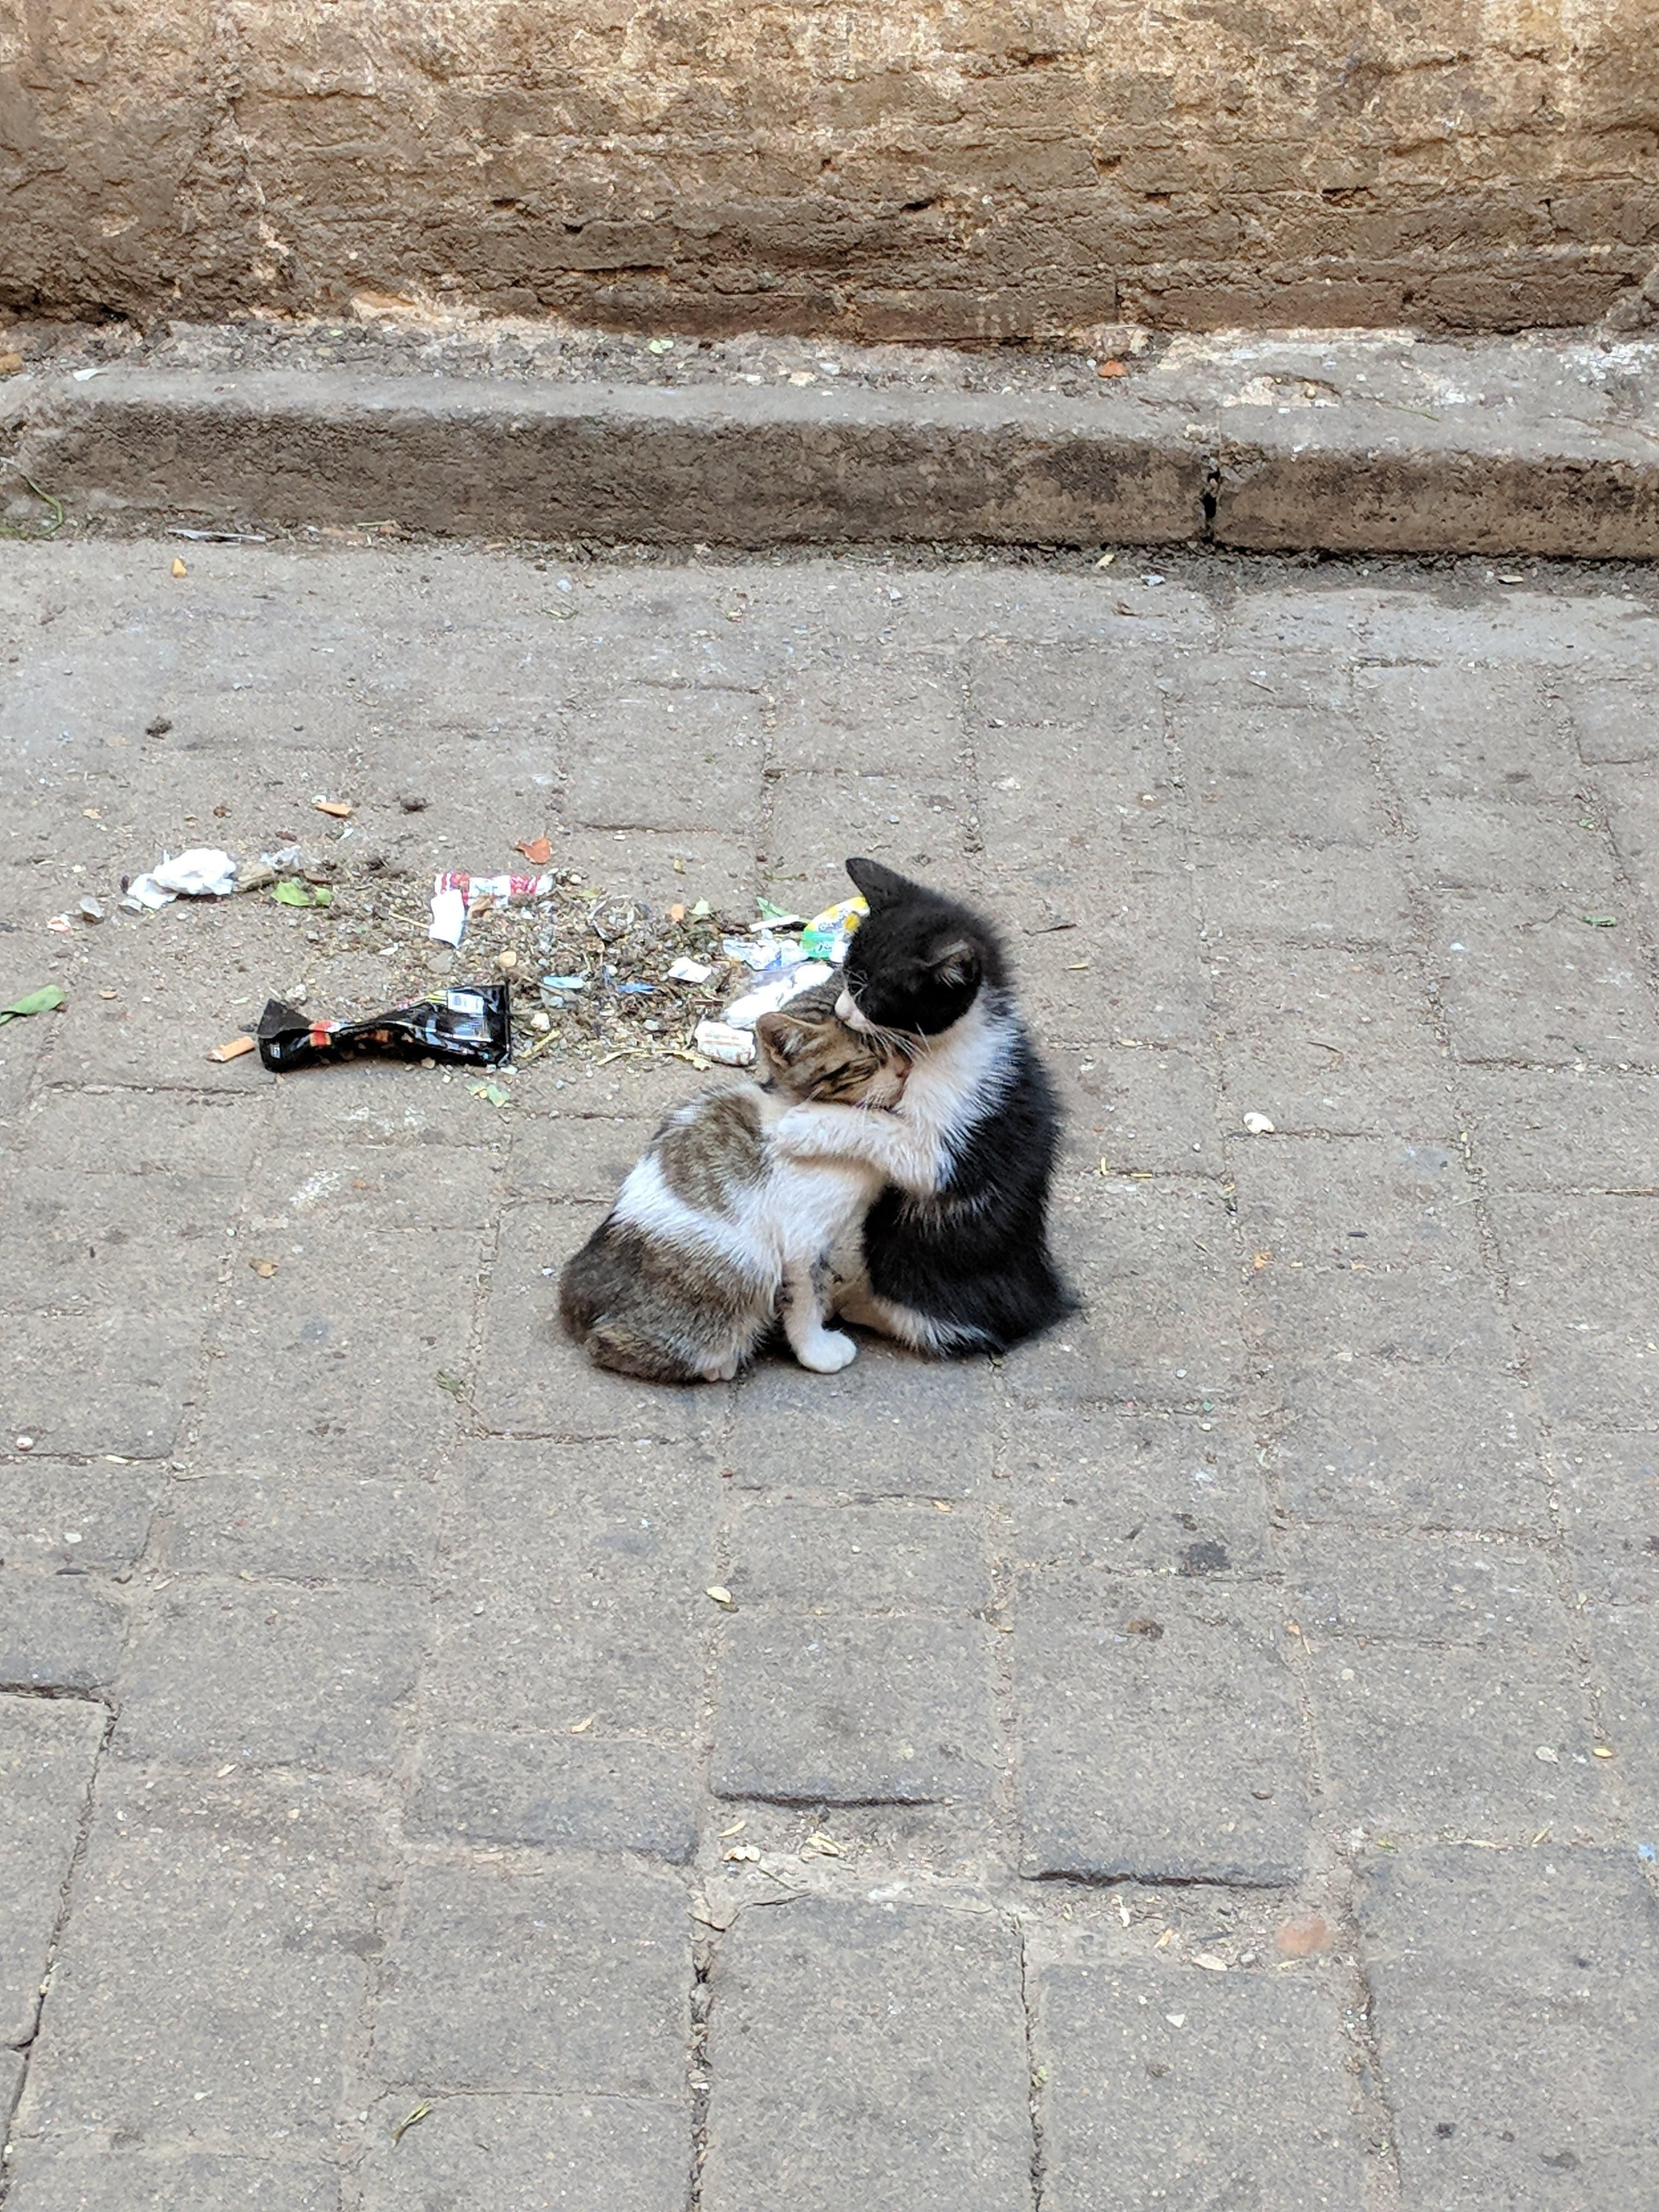 Hugging Kittens In The Streets Of The Medina In Fez Moroccohttps I Redd It Oneo7g8jf3711 Jpg Kittens Cute Cats Cool Pets